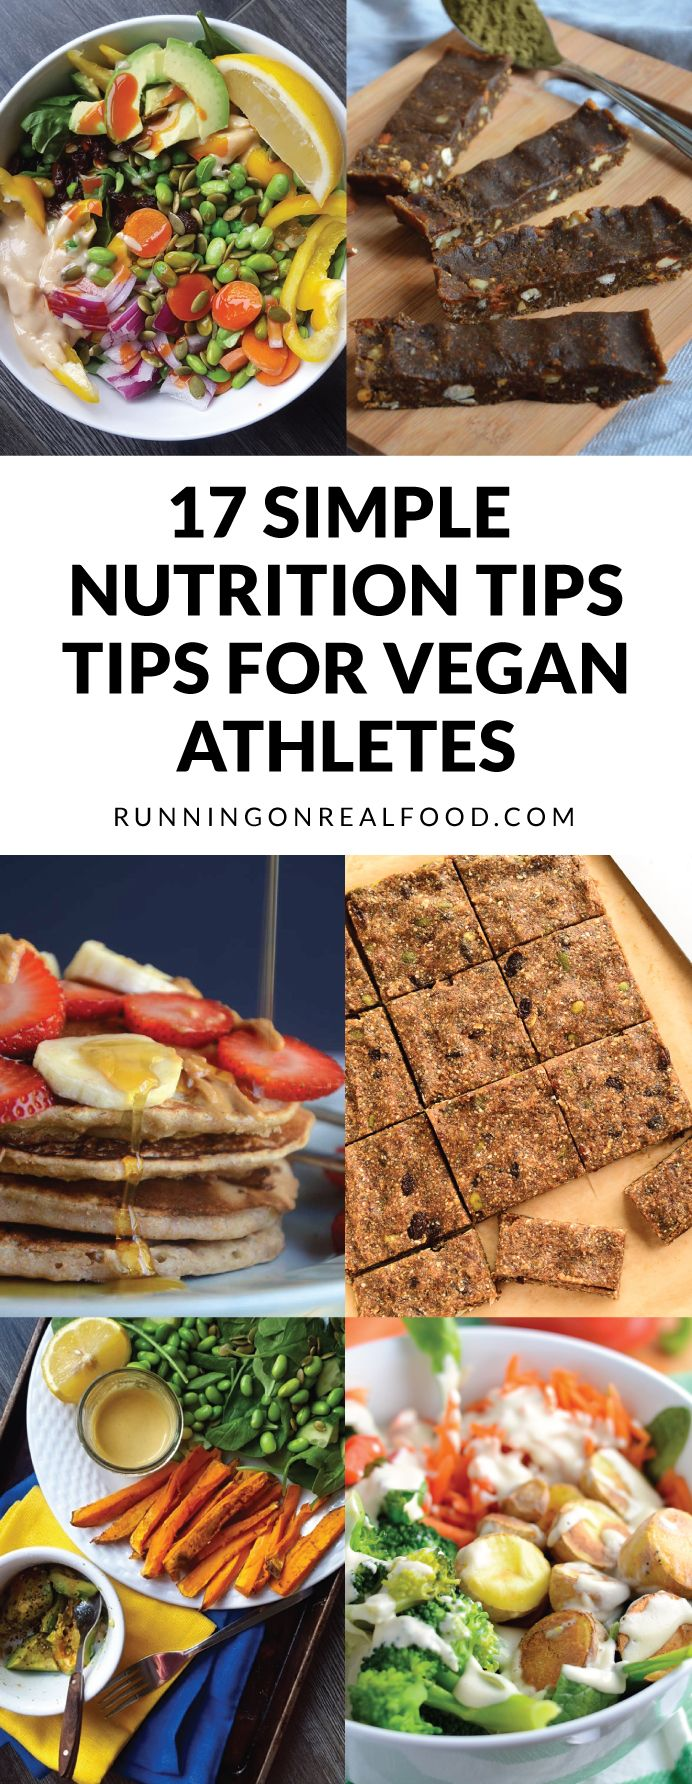 These 17 simple nutrition tips for vegan athletes might make plant-based eating become your secret weapon.